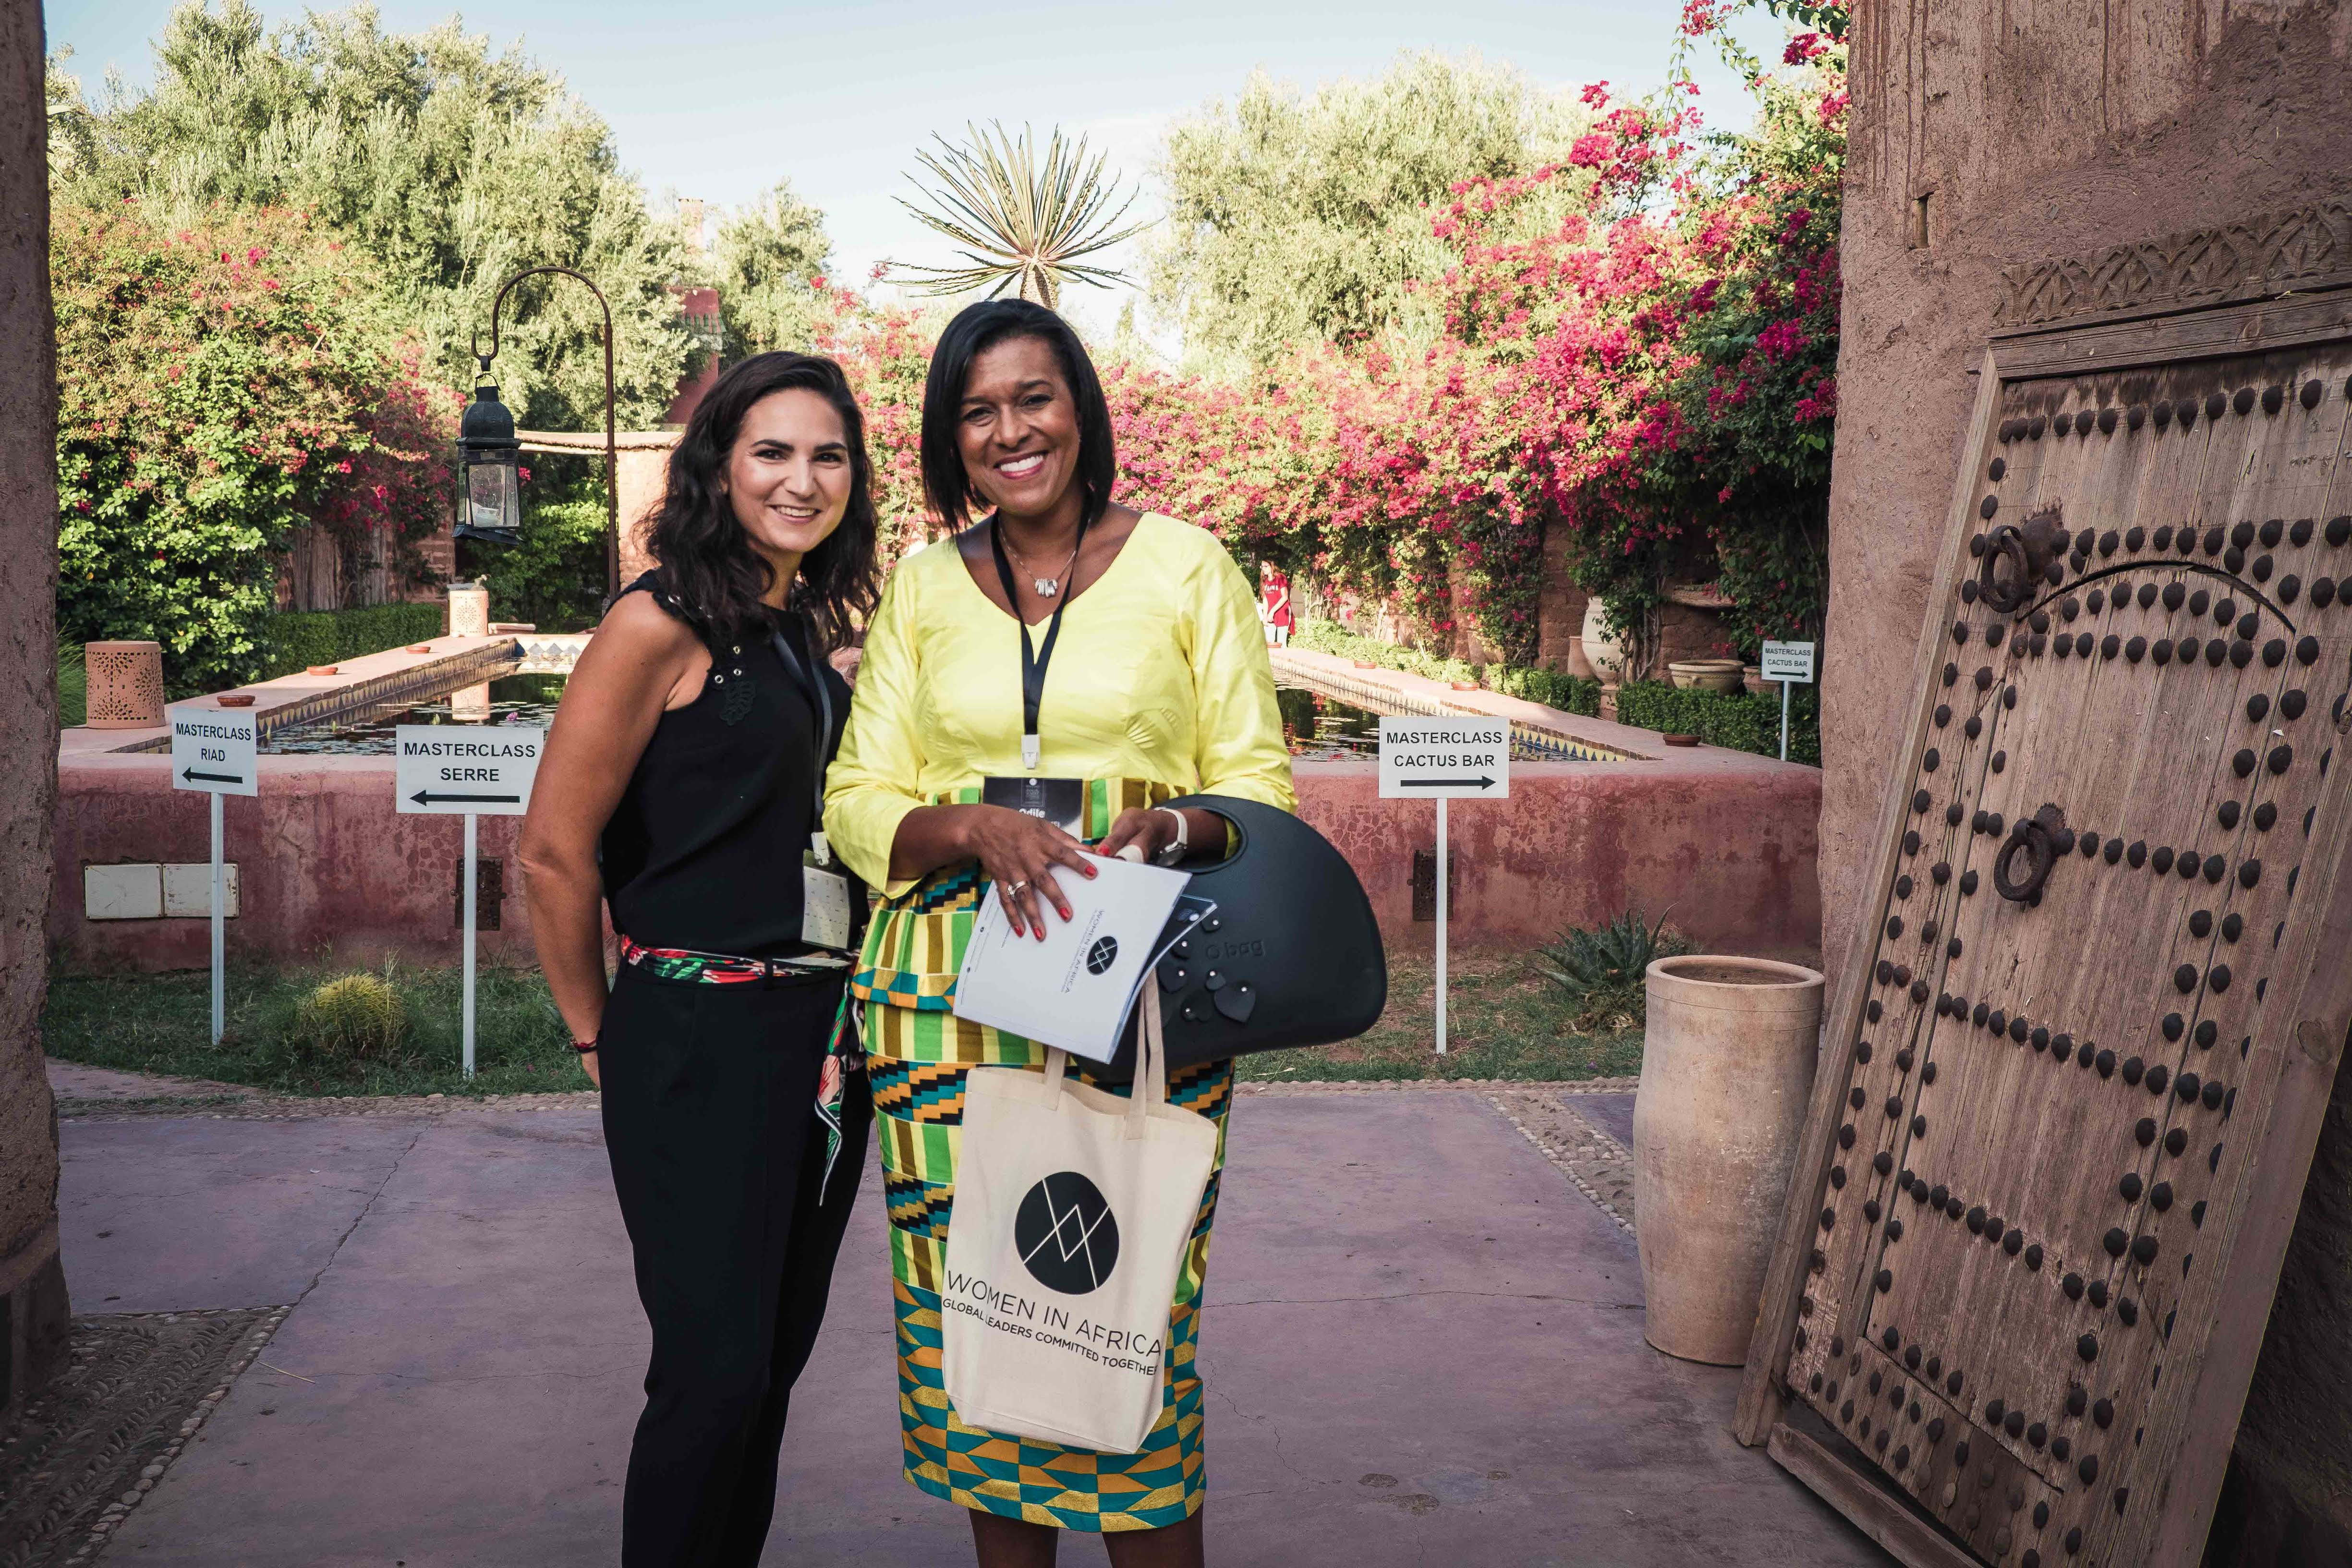 Women in Africa MARRAKECH 2018